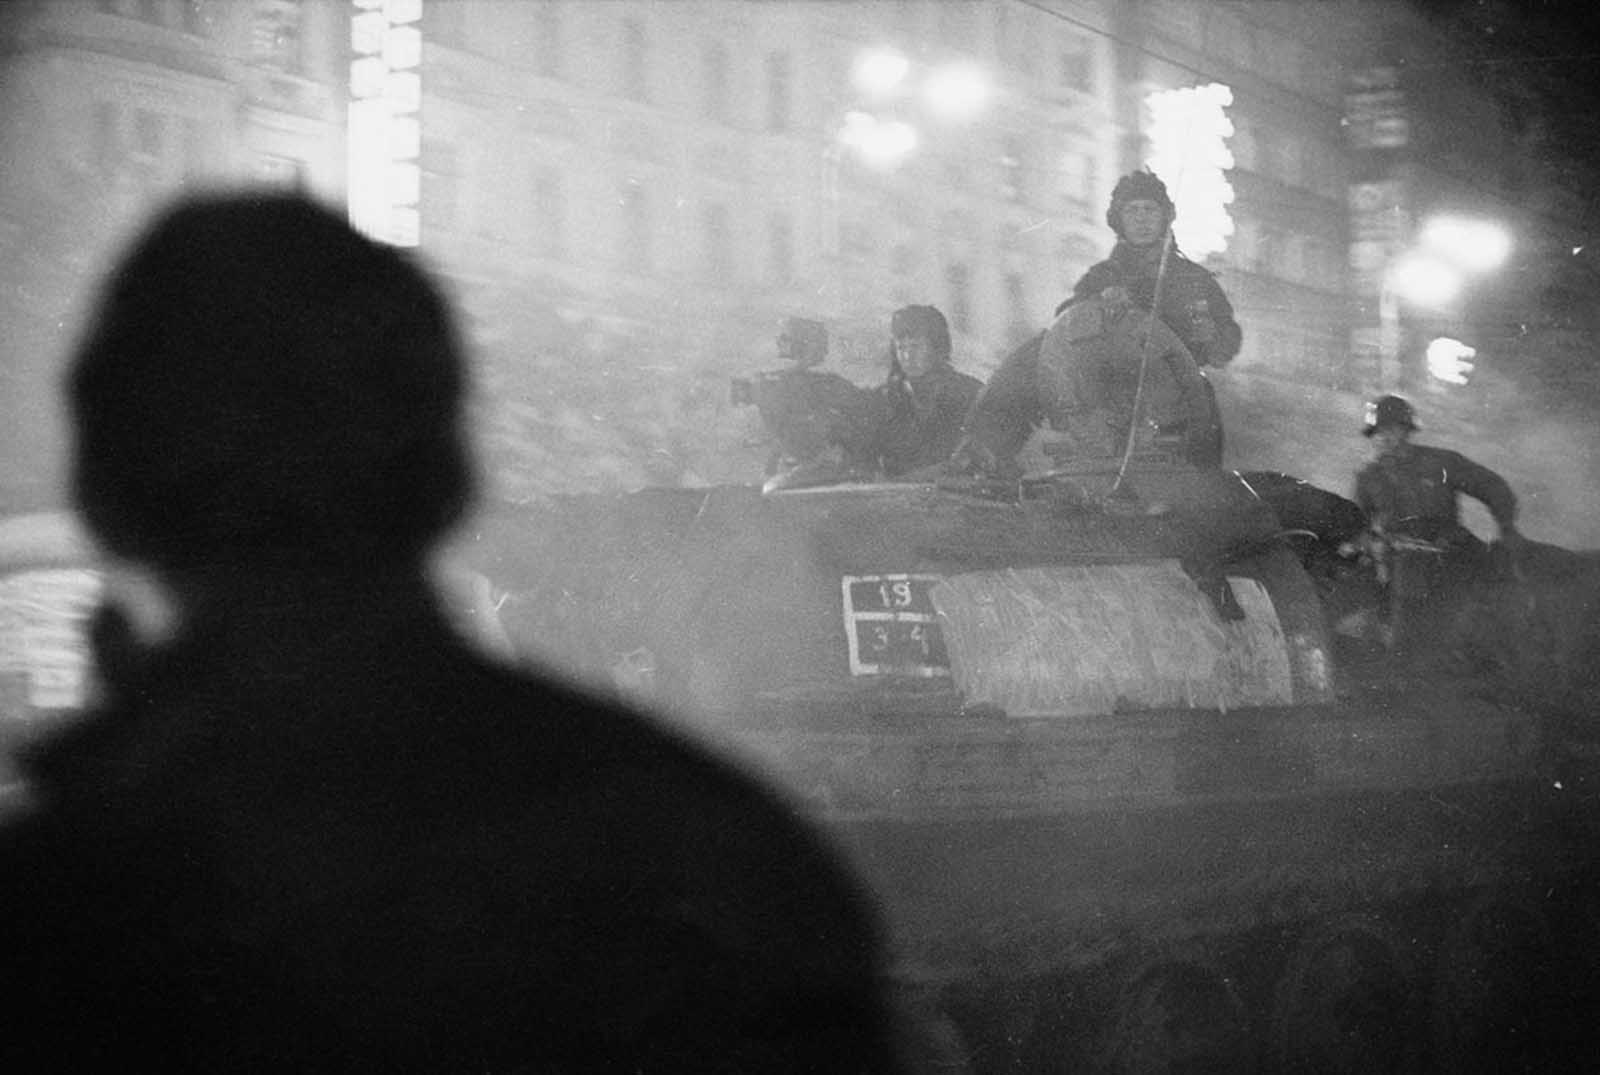 A shadowy figure watches Soviet tanks advance through the streets of Prague after nightfall in August 1968.